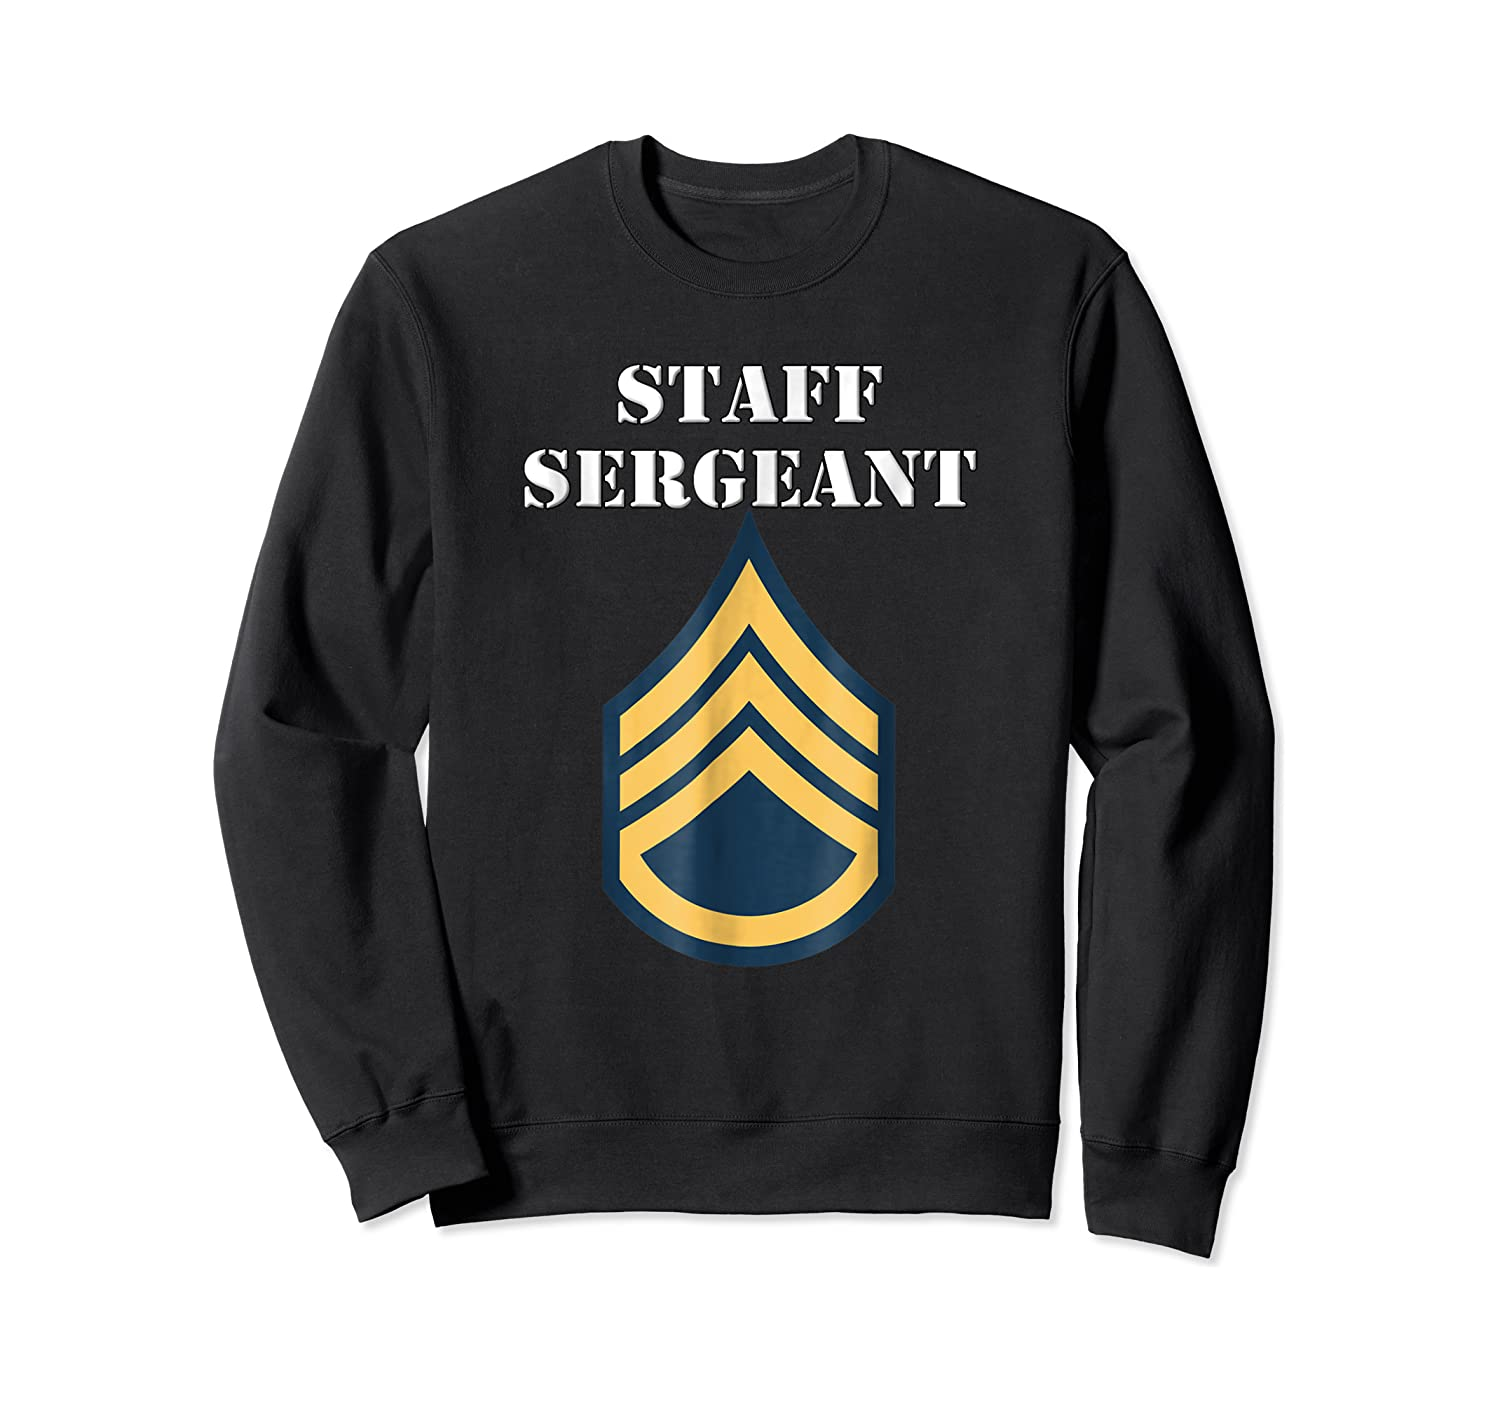 Staff Sergeant - Army Enlisted Rank Insignia Shirts Crewneck Sweater